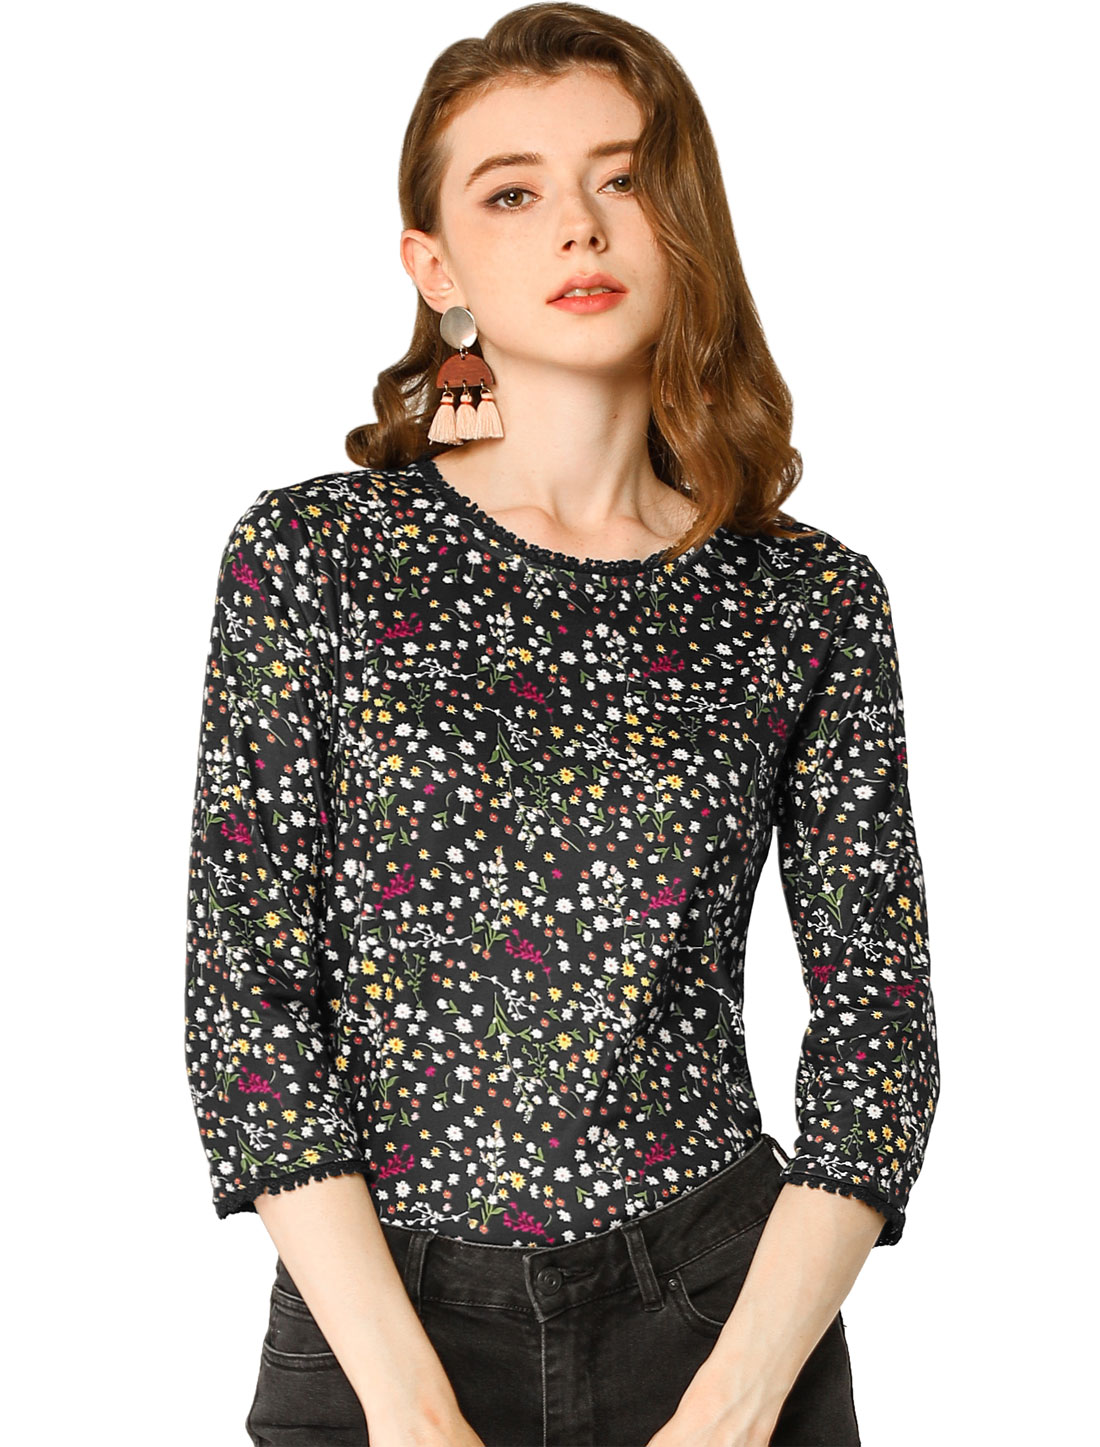 Allegra K Women's 3/4 Sleeves Lace Trim Floral Top Black XS